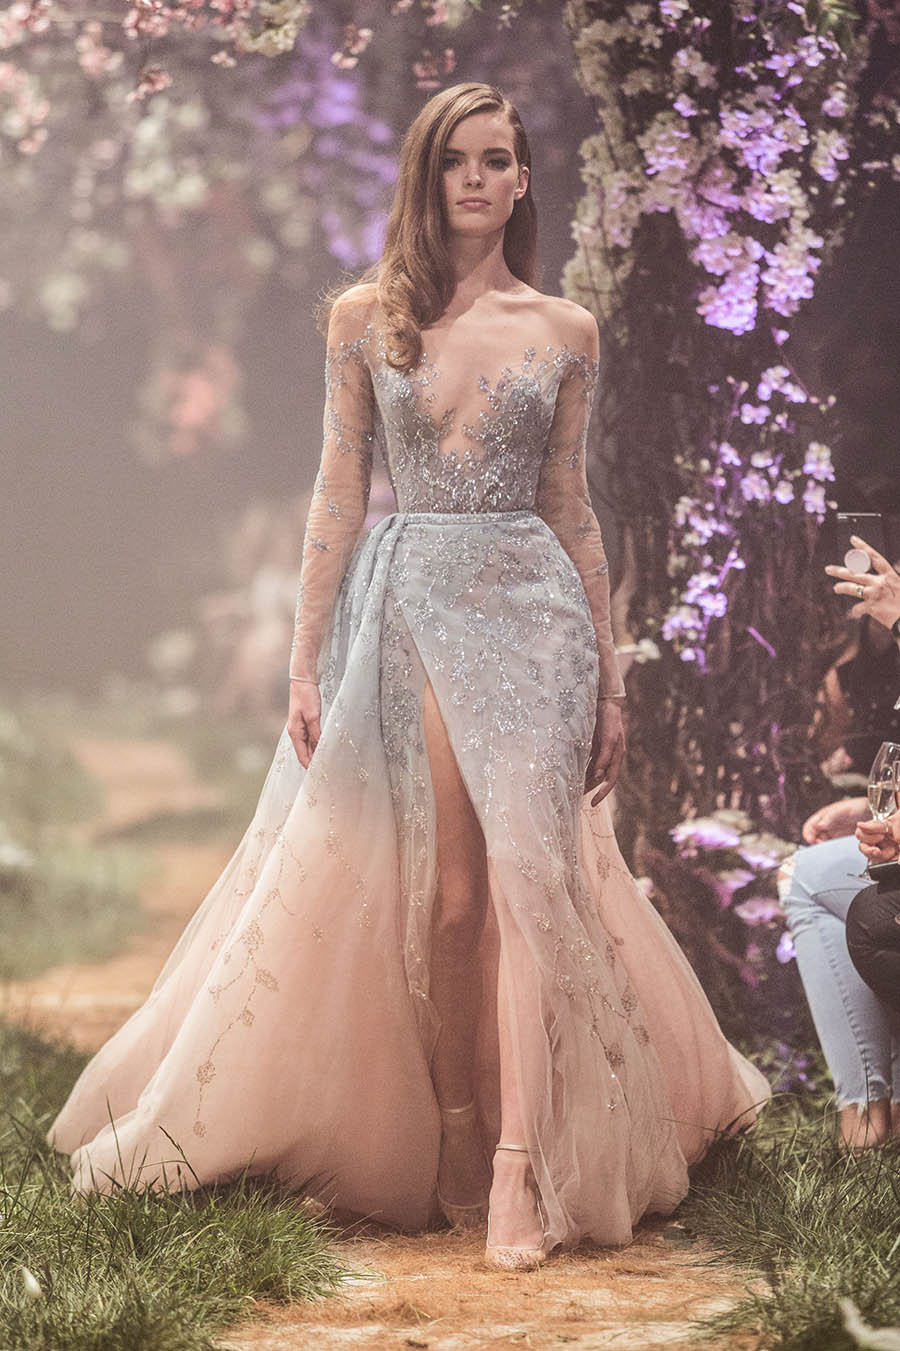 Twenty Seven Year Old Adelaide Designer Paul Vasileff Launched His Latest Couture Collection At Three Runway Shows The Fashion Festival On